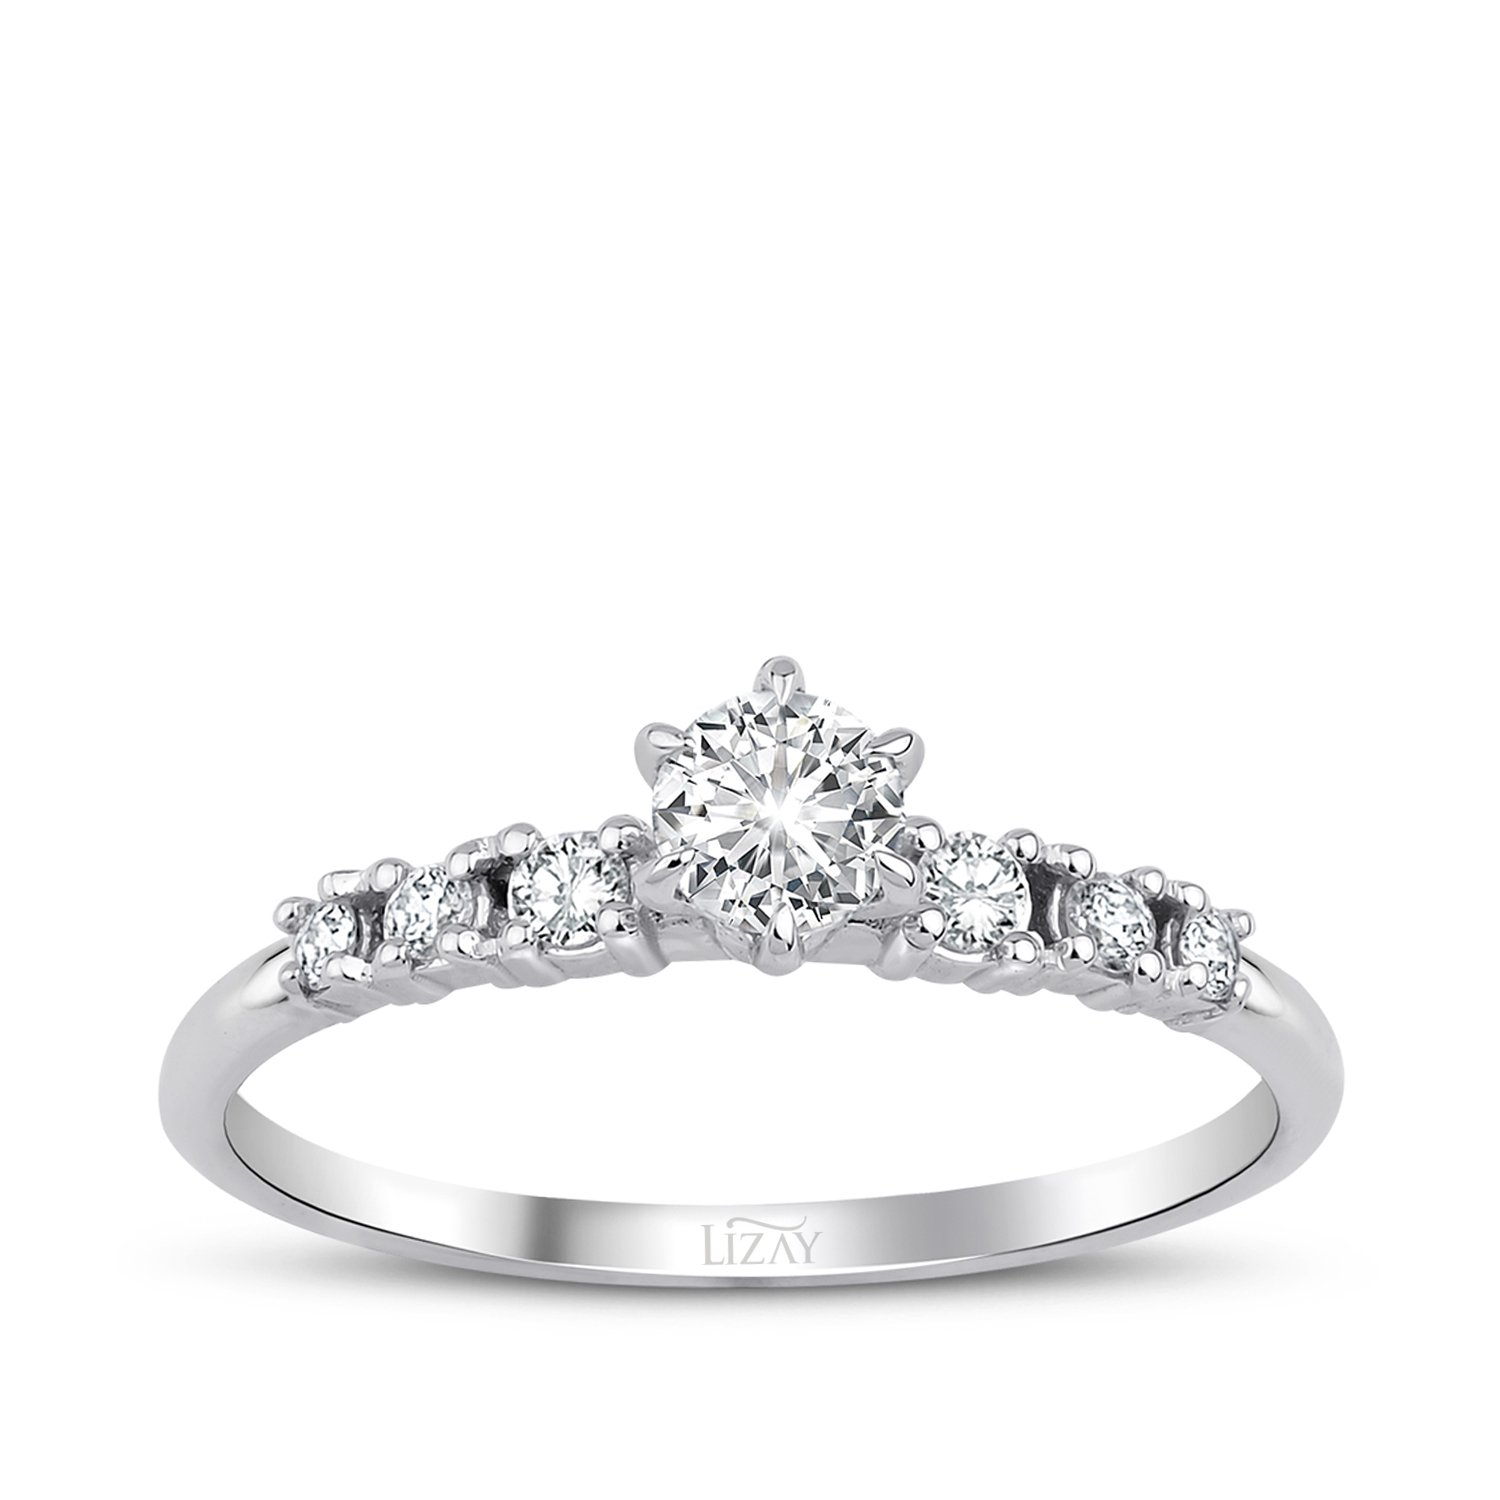 0.37 Carat Diamond Engagement Ring